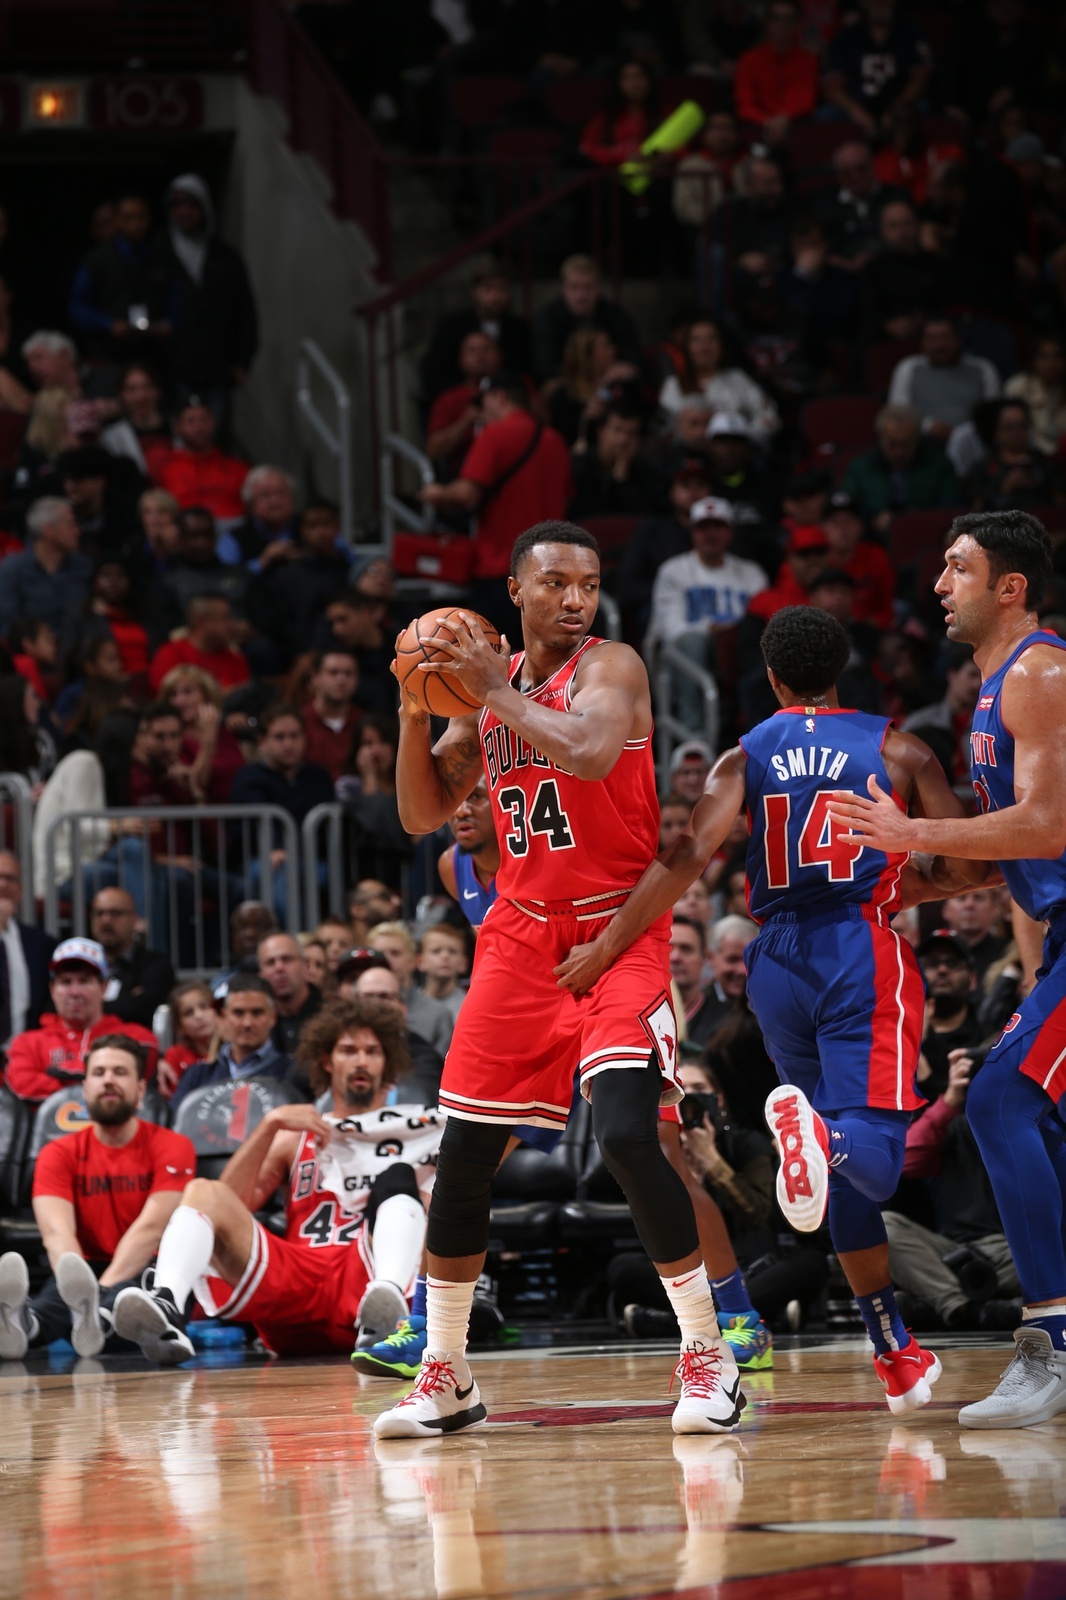 Wendell Cater Jr. of the Chicago Bulls handles the ball in a game against the Detroit Pistons.